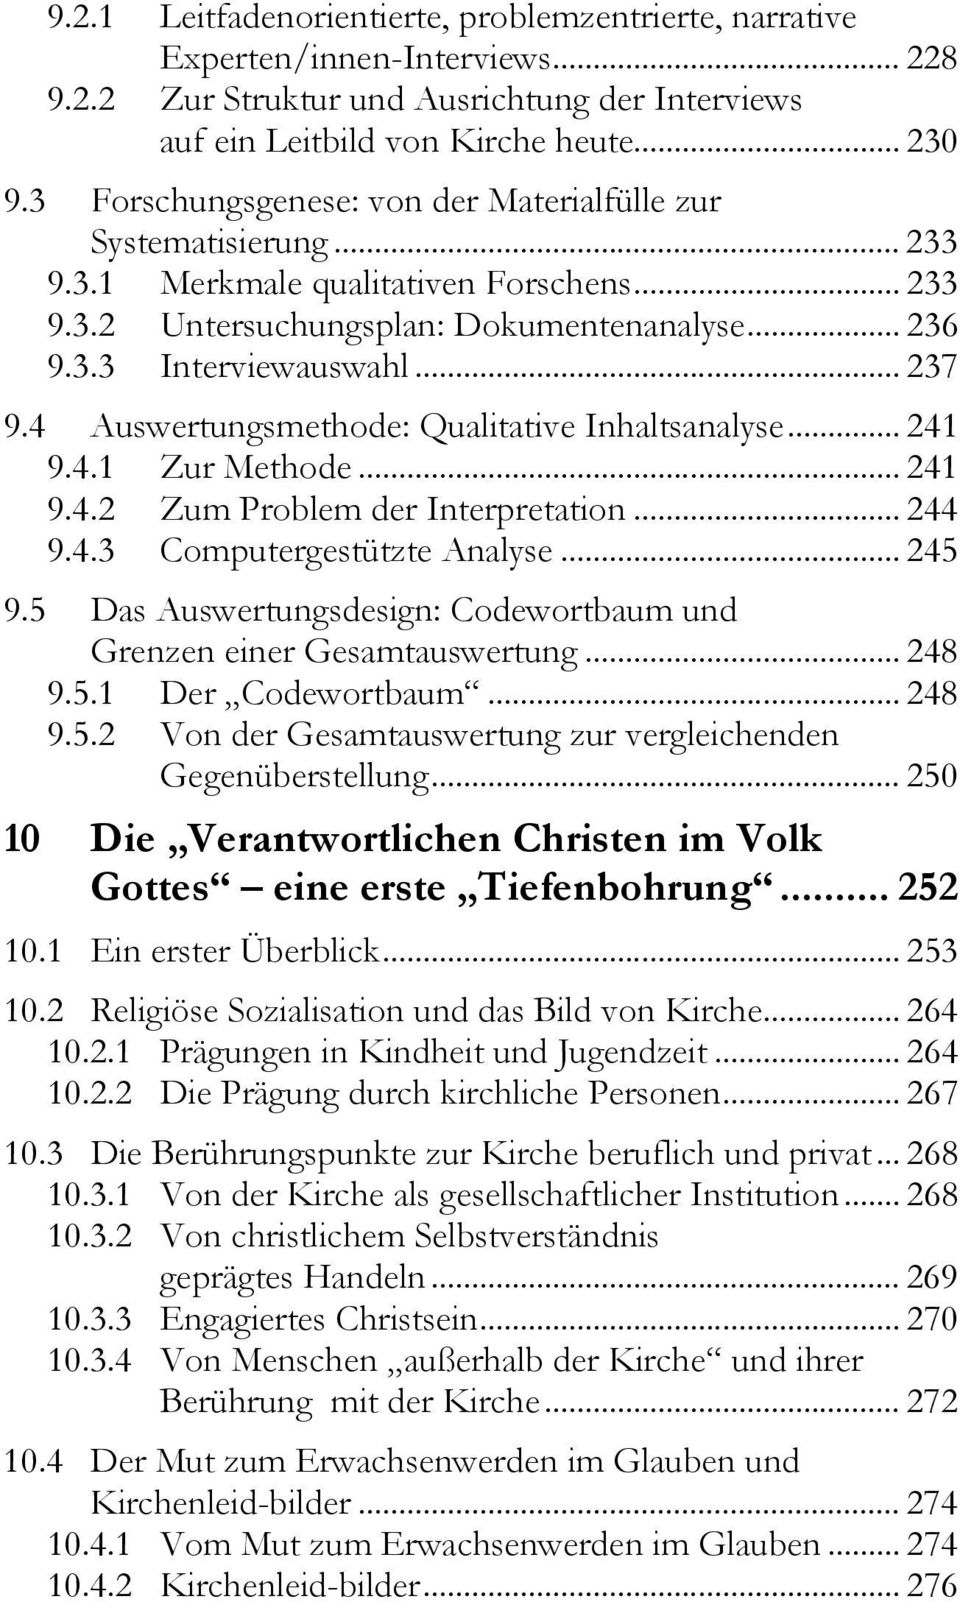 4 Auswertungsmethode: Qualitative Inhaltsanalyse... 241 9.4.1 Zur Methode... 241 9.4.2 Zum Problem der Interpretation... 244 9.4.3 Computergestützte Analyse... 245 9.